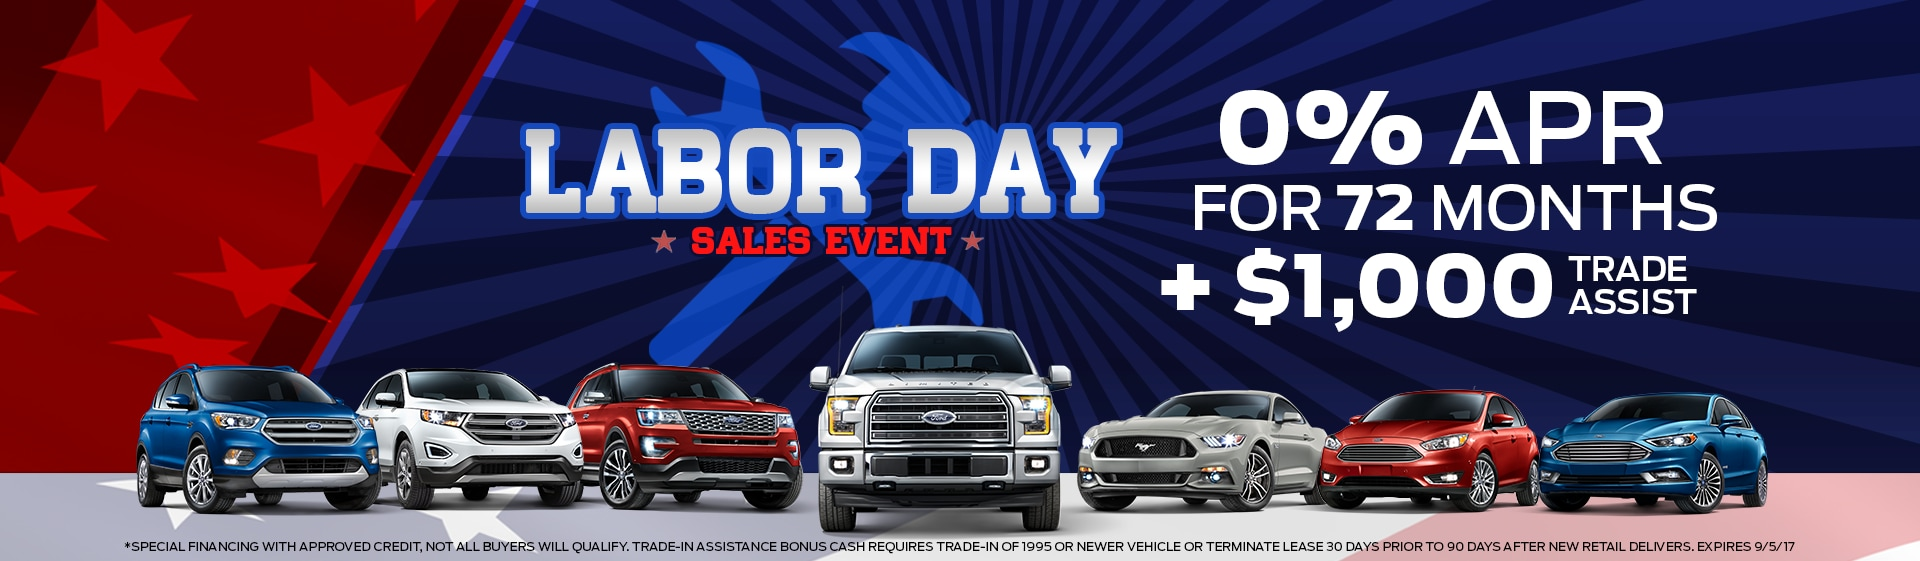 Labor Day Sales Event  sc 1 st  Tom Masano Ford Lincoln | New Ford dealership in Reading PA 19607 & Tom Masano Ford Lincoln | New Ford dealership in Reading PA 19607 markmcfarlin.com